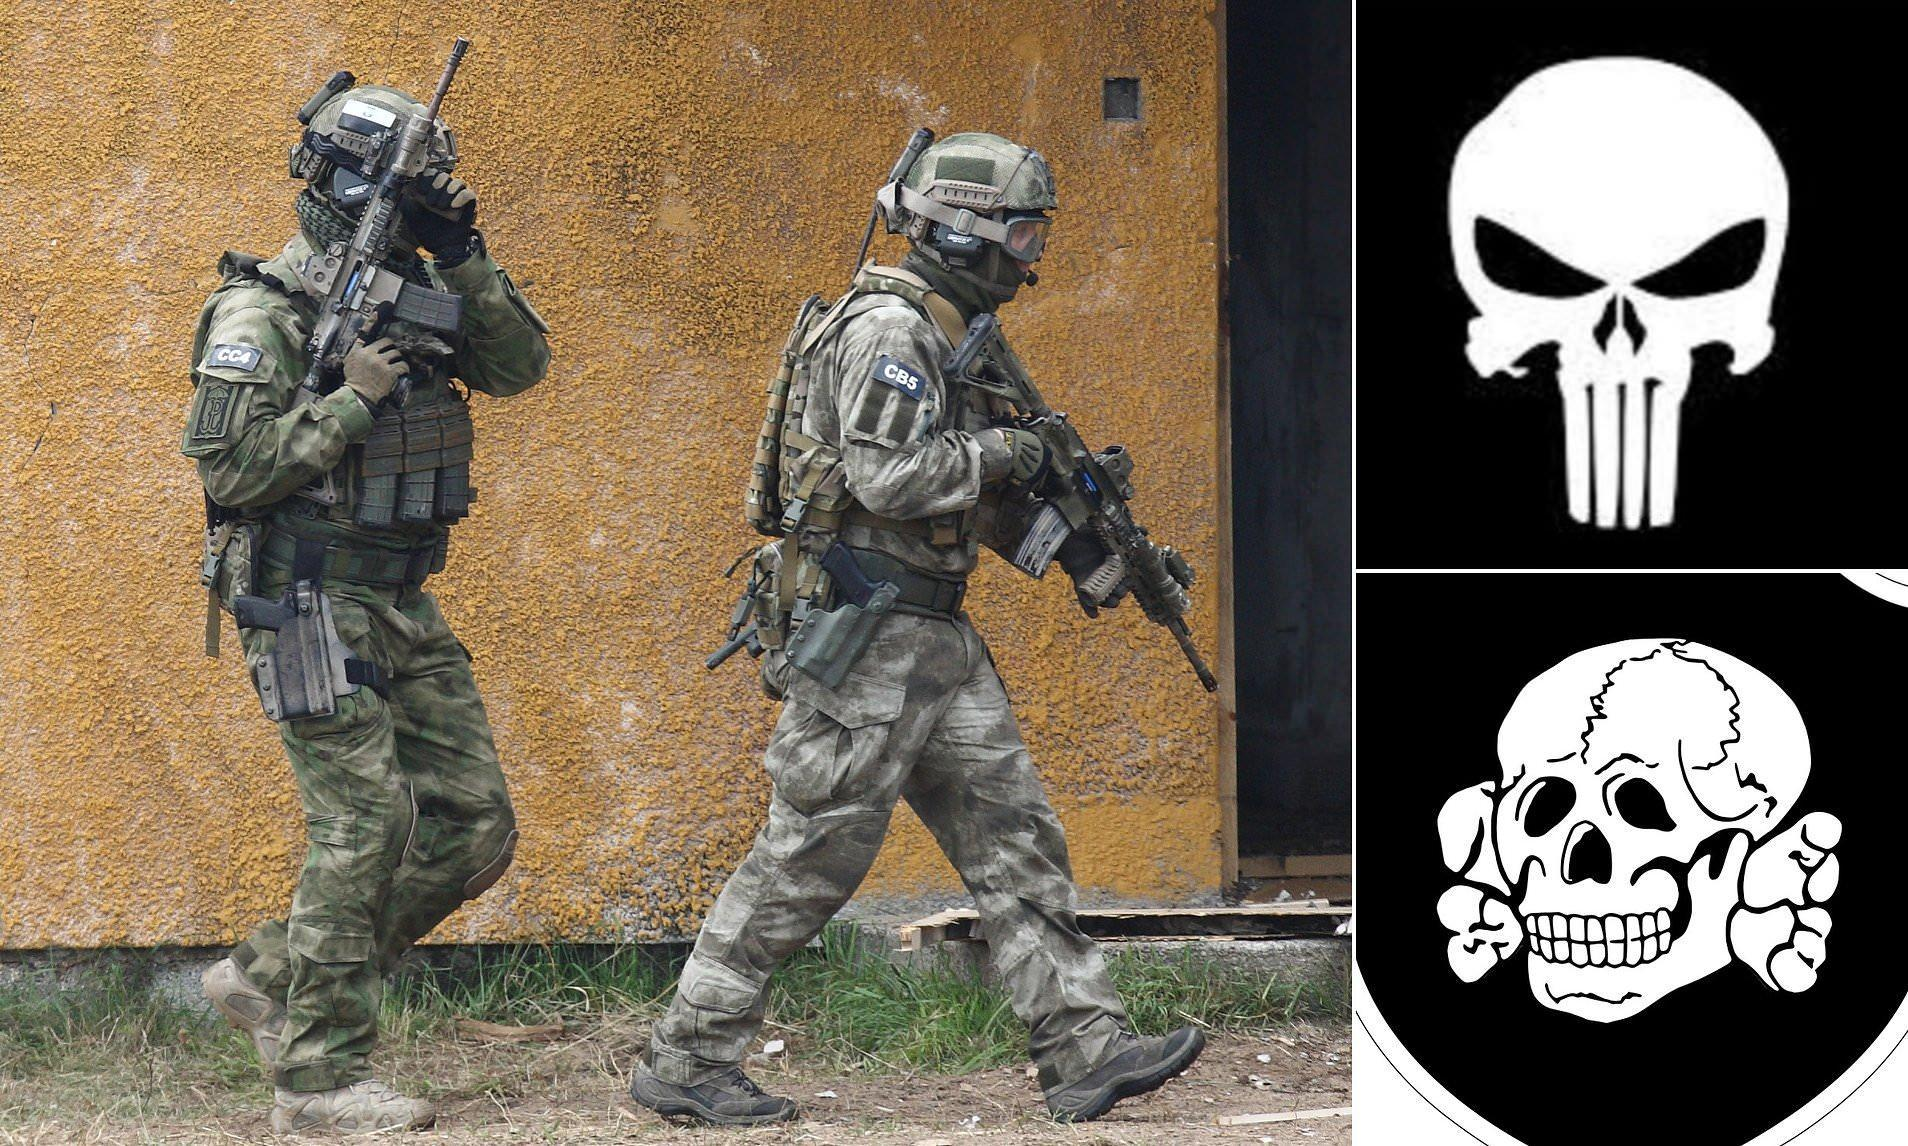 british sas punisher badge reportedly banned